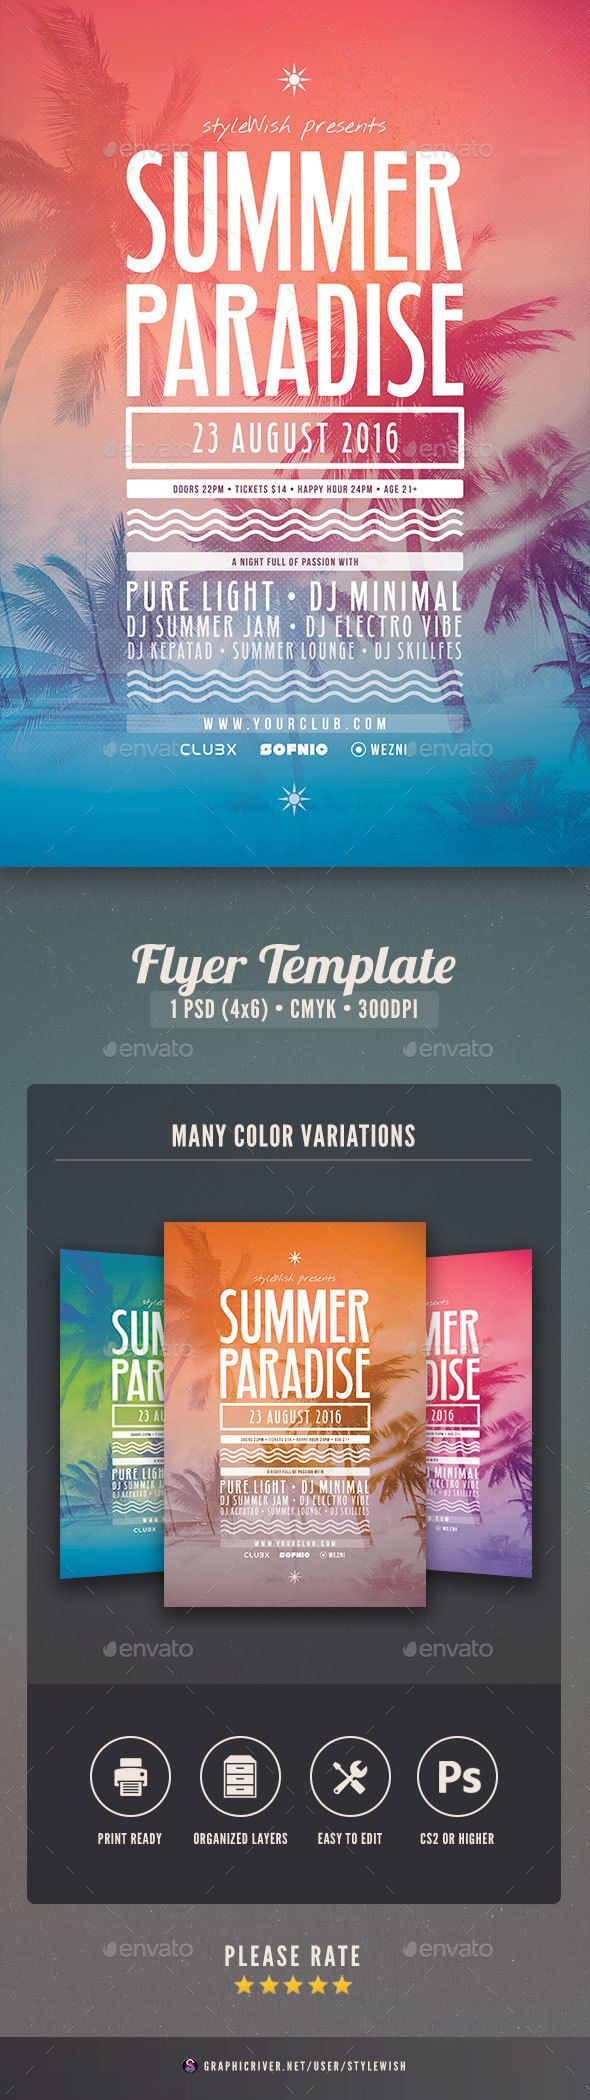 Summer Paradise Flyer Design Idea - Concerts Event Flyer Template PSD. Download here: http://graphicriver.net/item/summer-paradise-flyer/16473350?s_rank=442&ref=yinkira